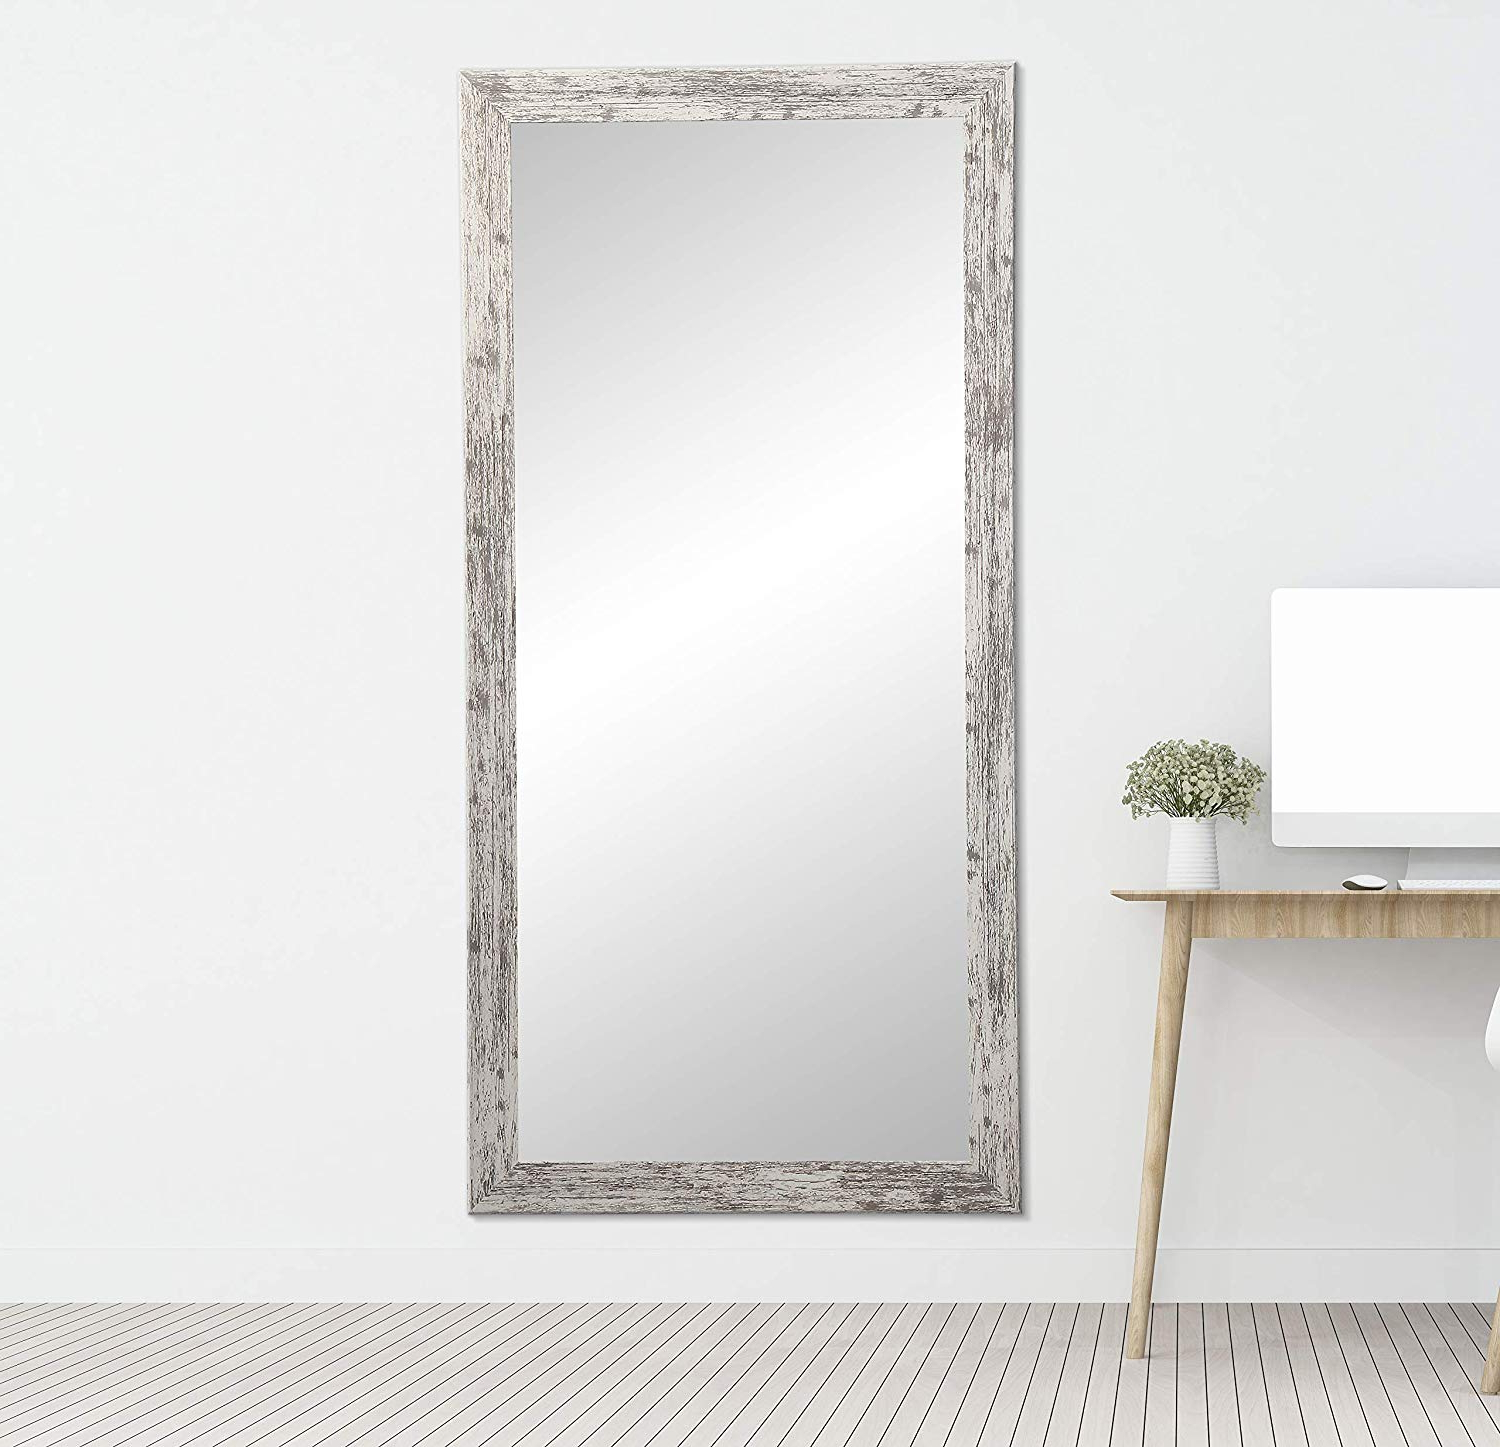 Brandtworks Barn Wood Full Length Floor Vanity Wall Mirror, 32 X 71, Heavy Distressed White/gray In Current Floor Length Wall Mirrors (View 8 of 20)